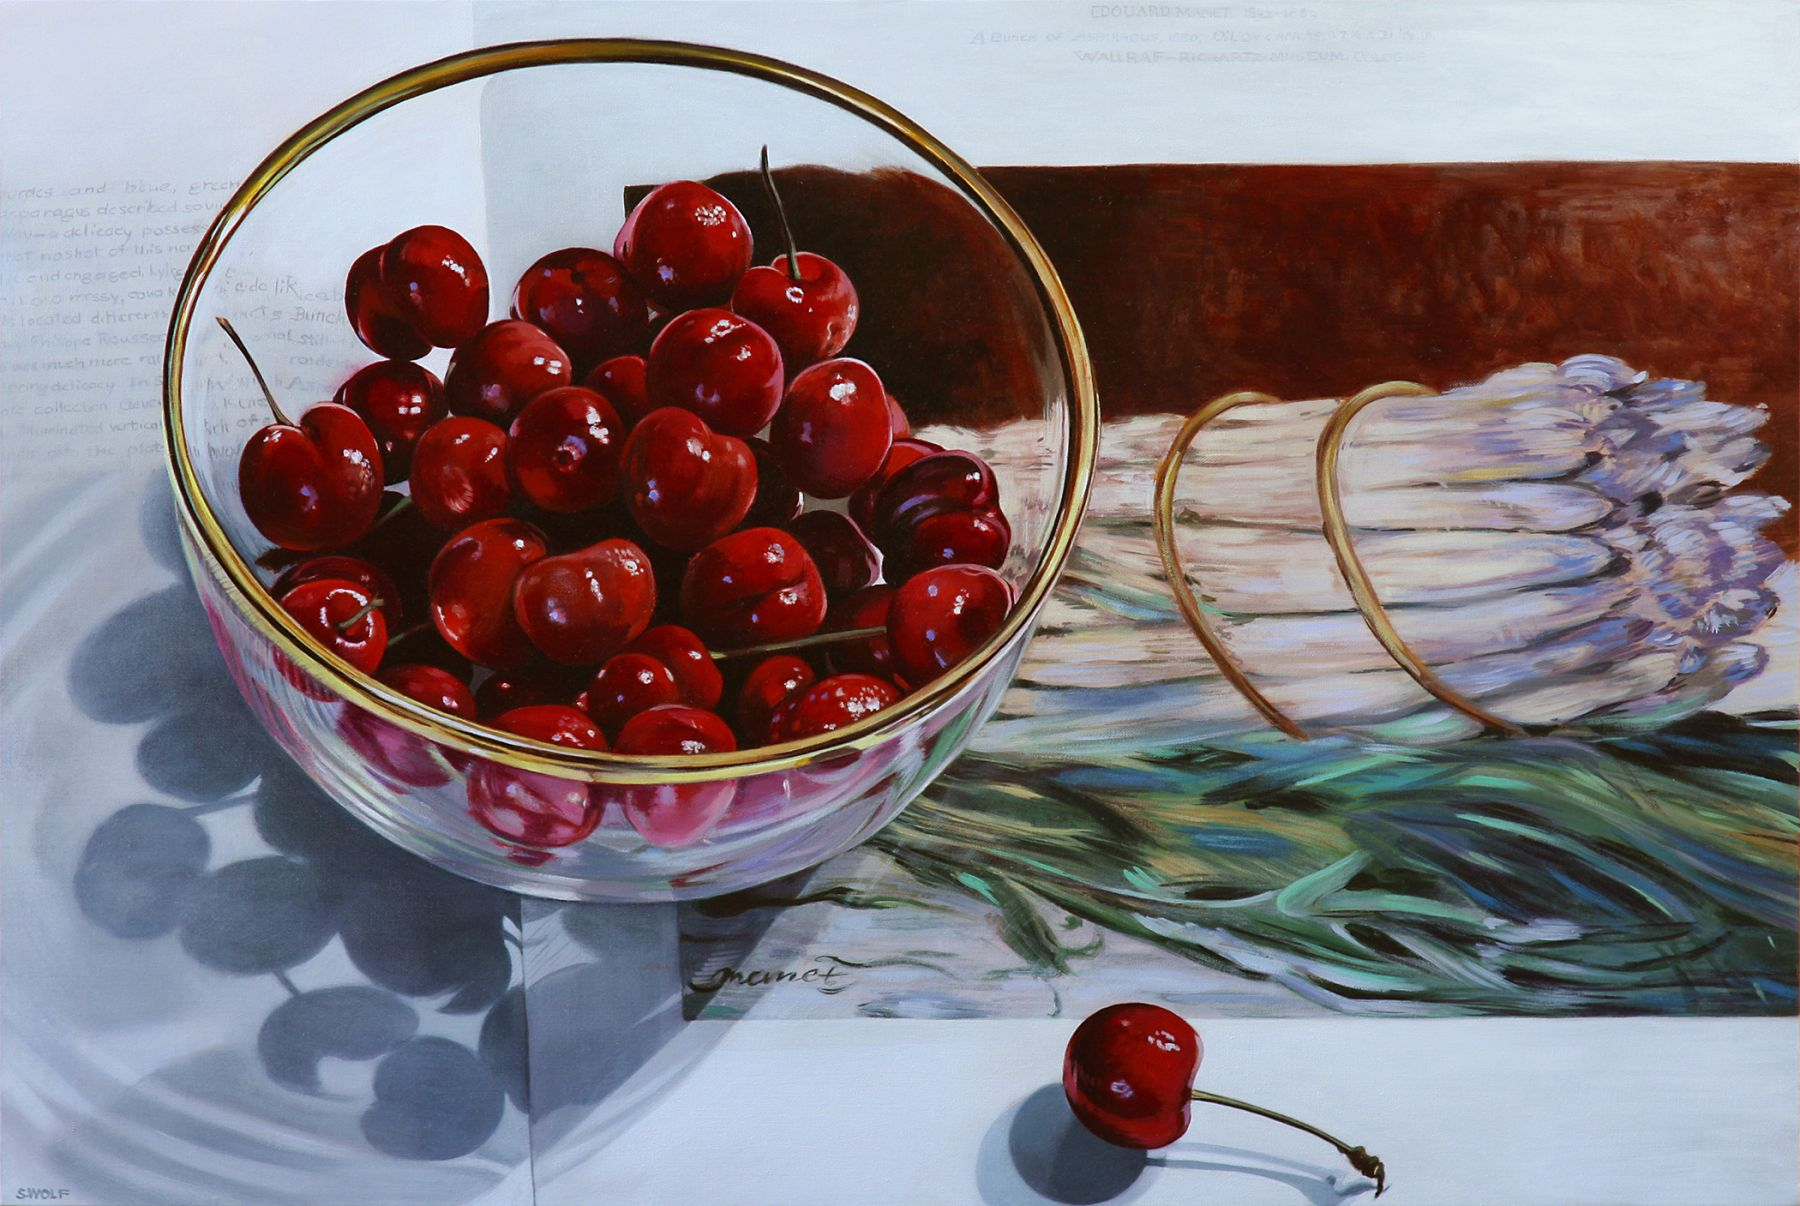 Wolf - Cherries with Asparagus